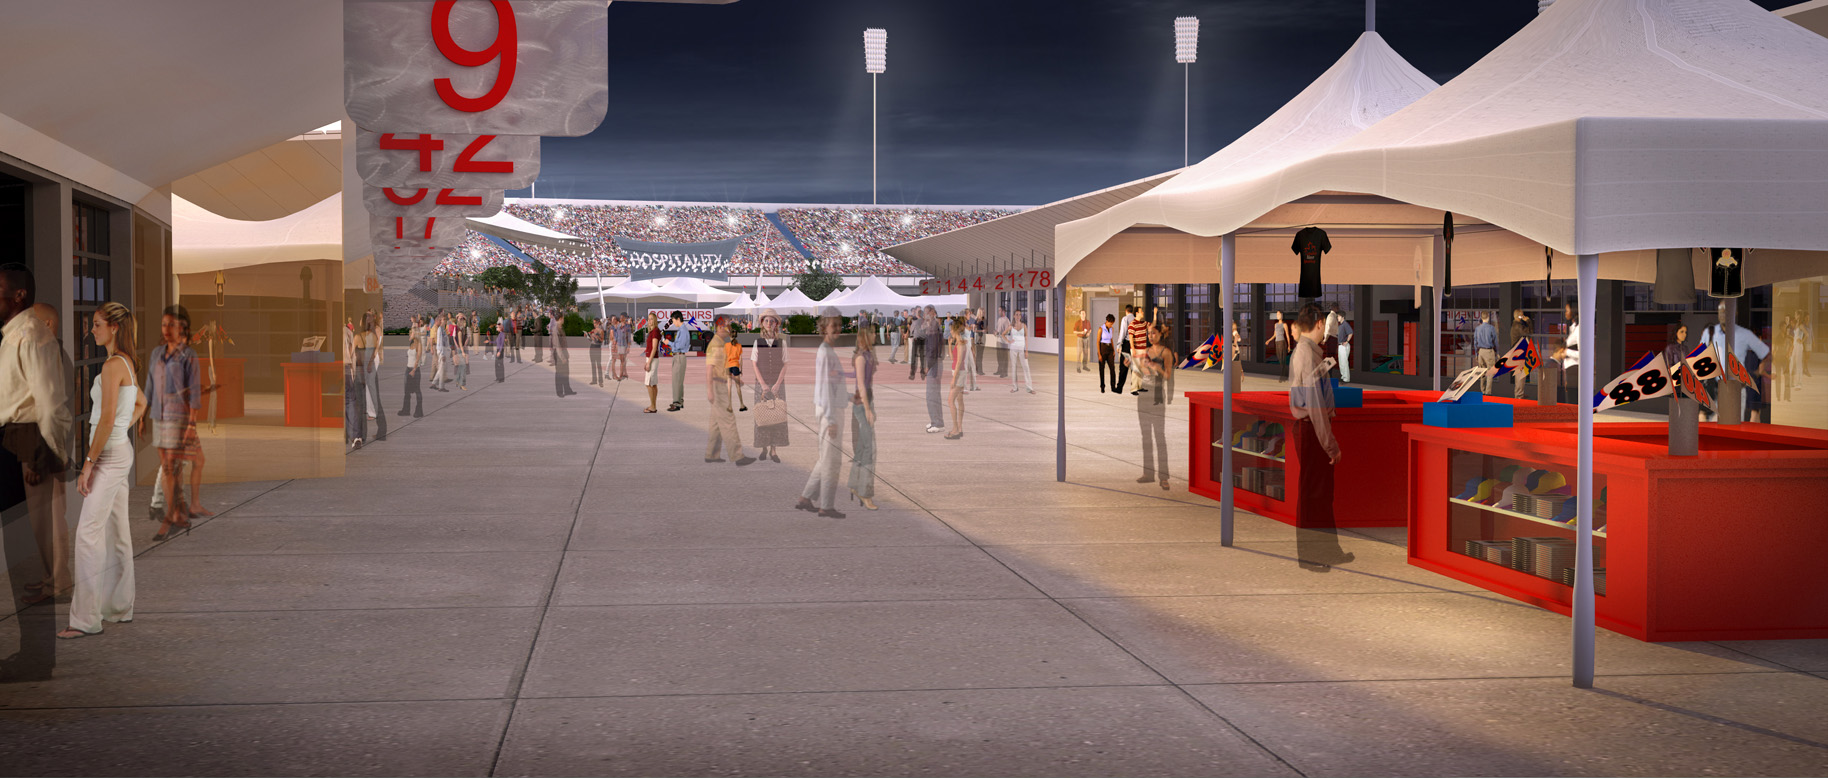 Render of concessions and stands